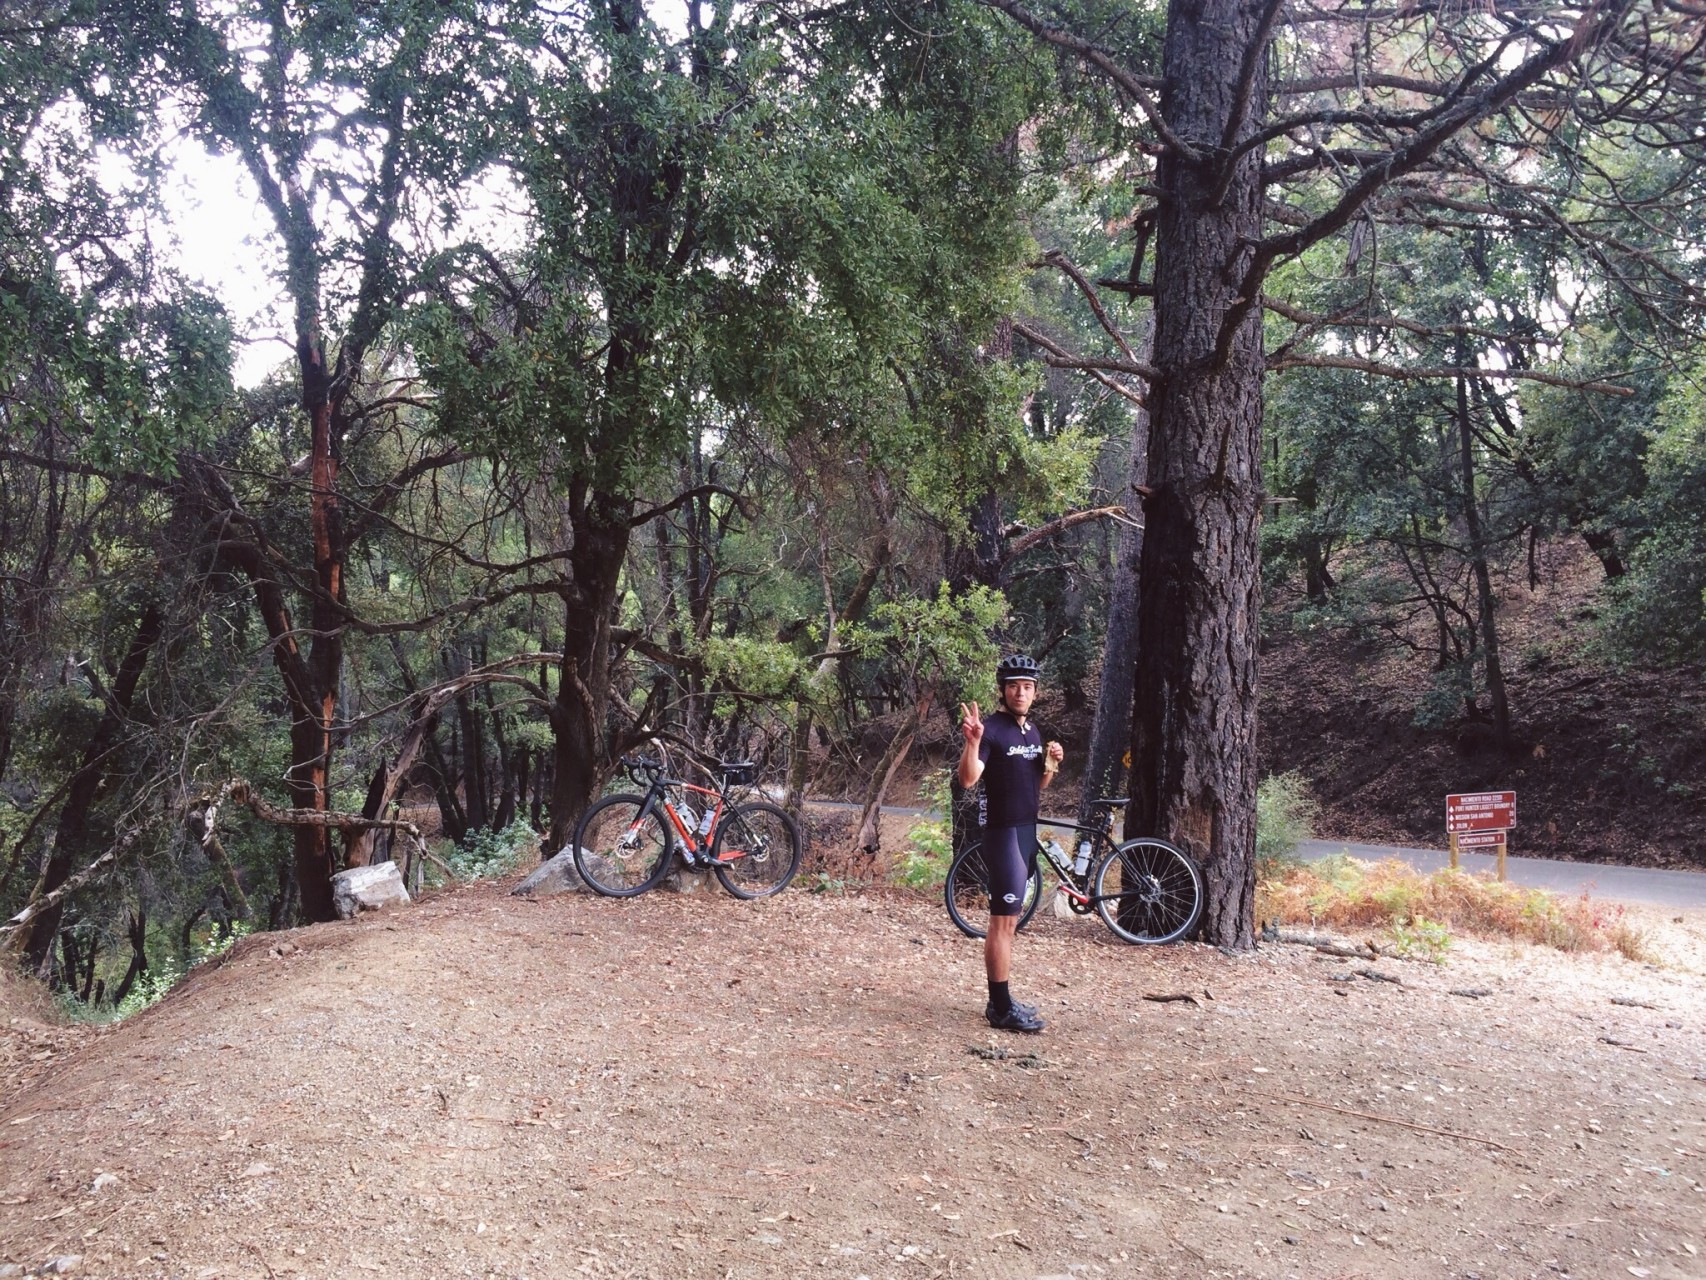 With Nacimiento done, we find ourselves at a crossroads. We eat before continuing up North Ridge Trail